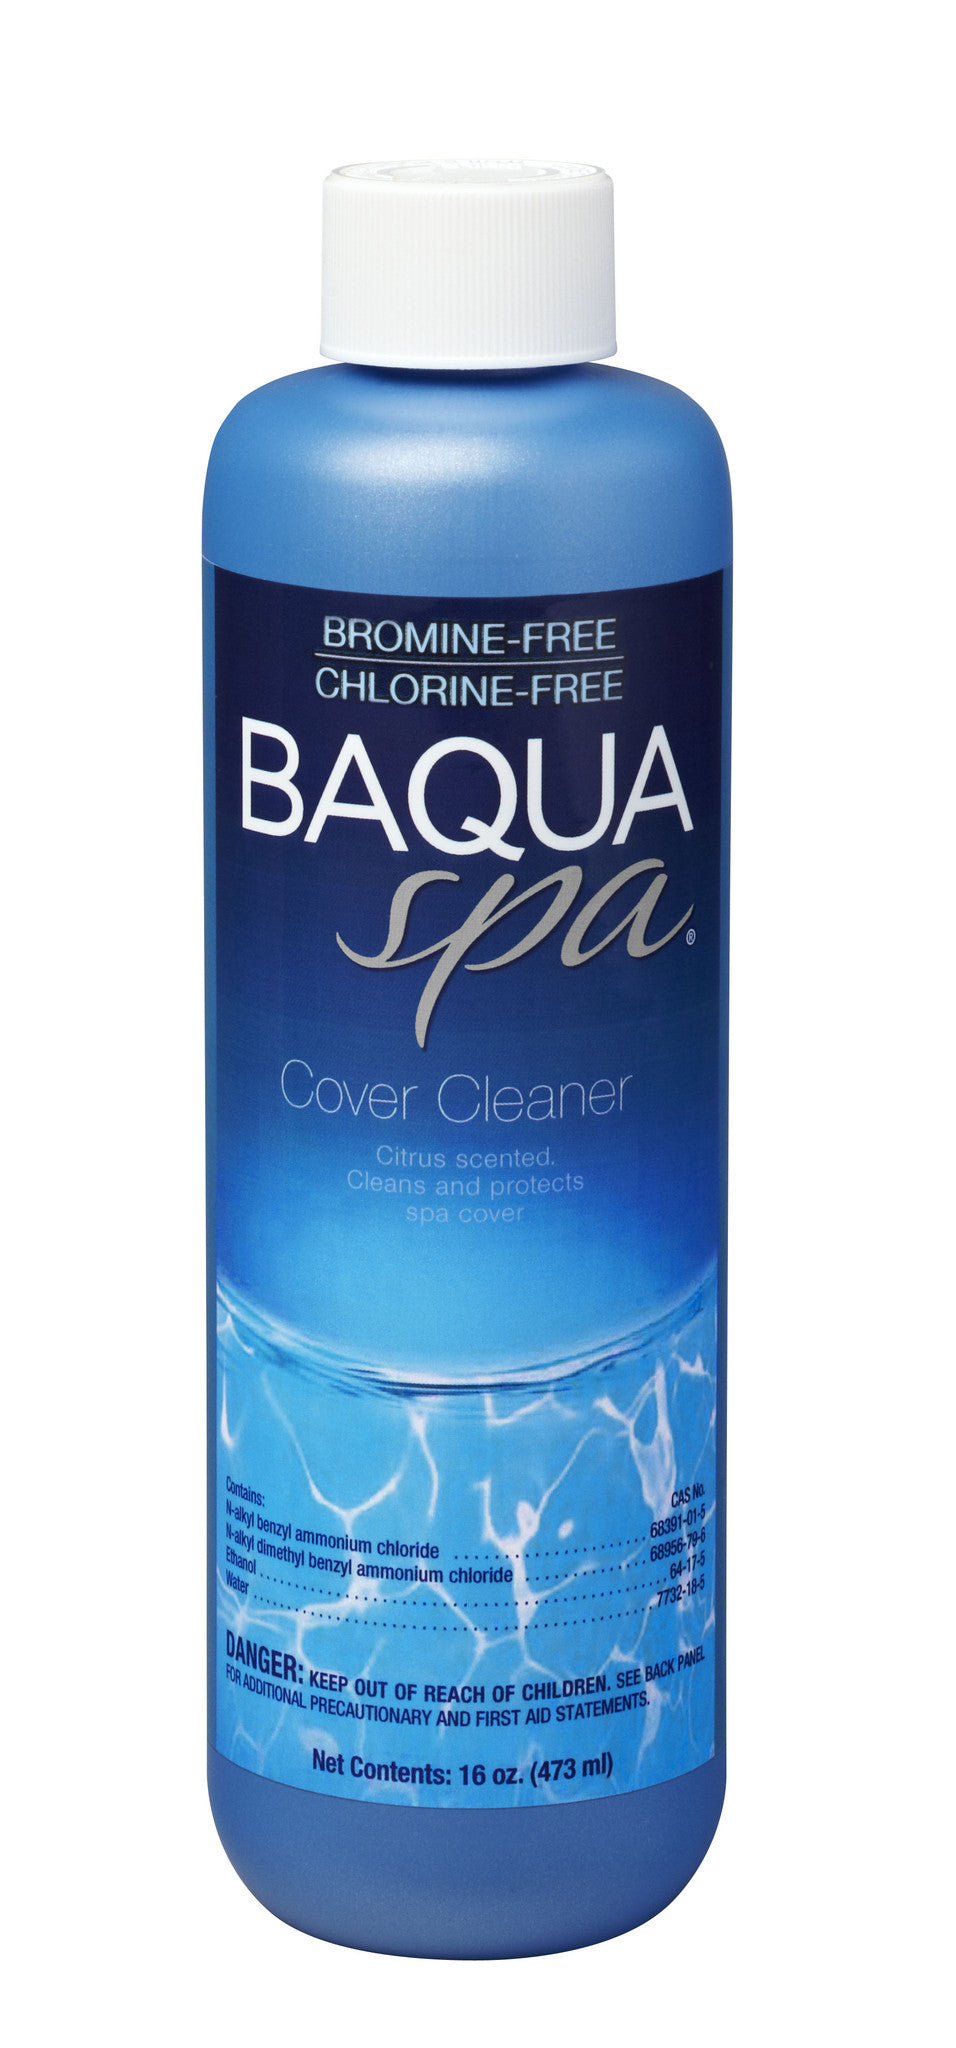 Baqua Spa cover cleaner